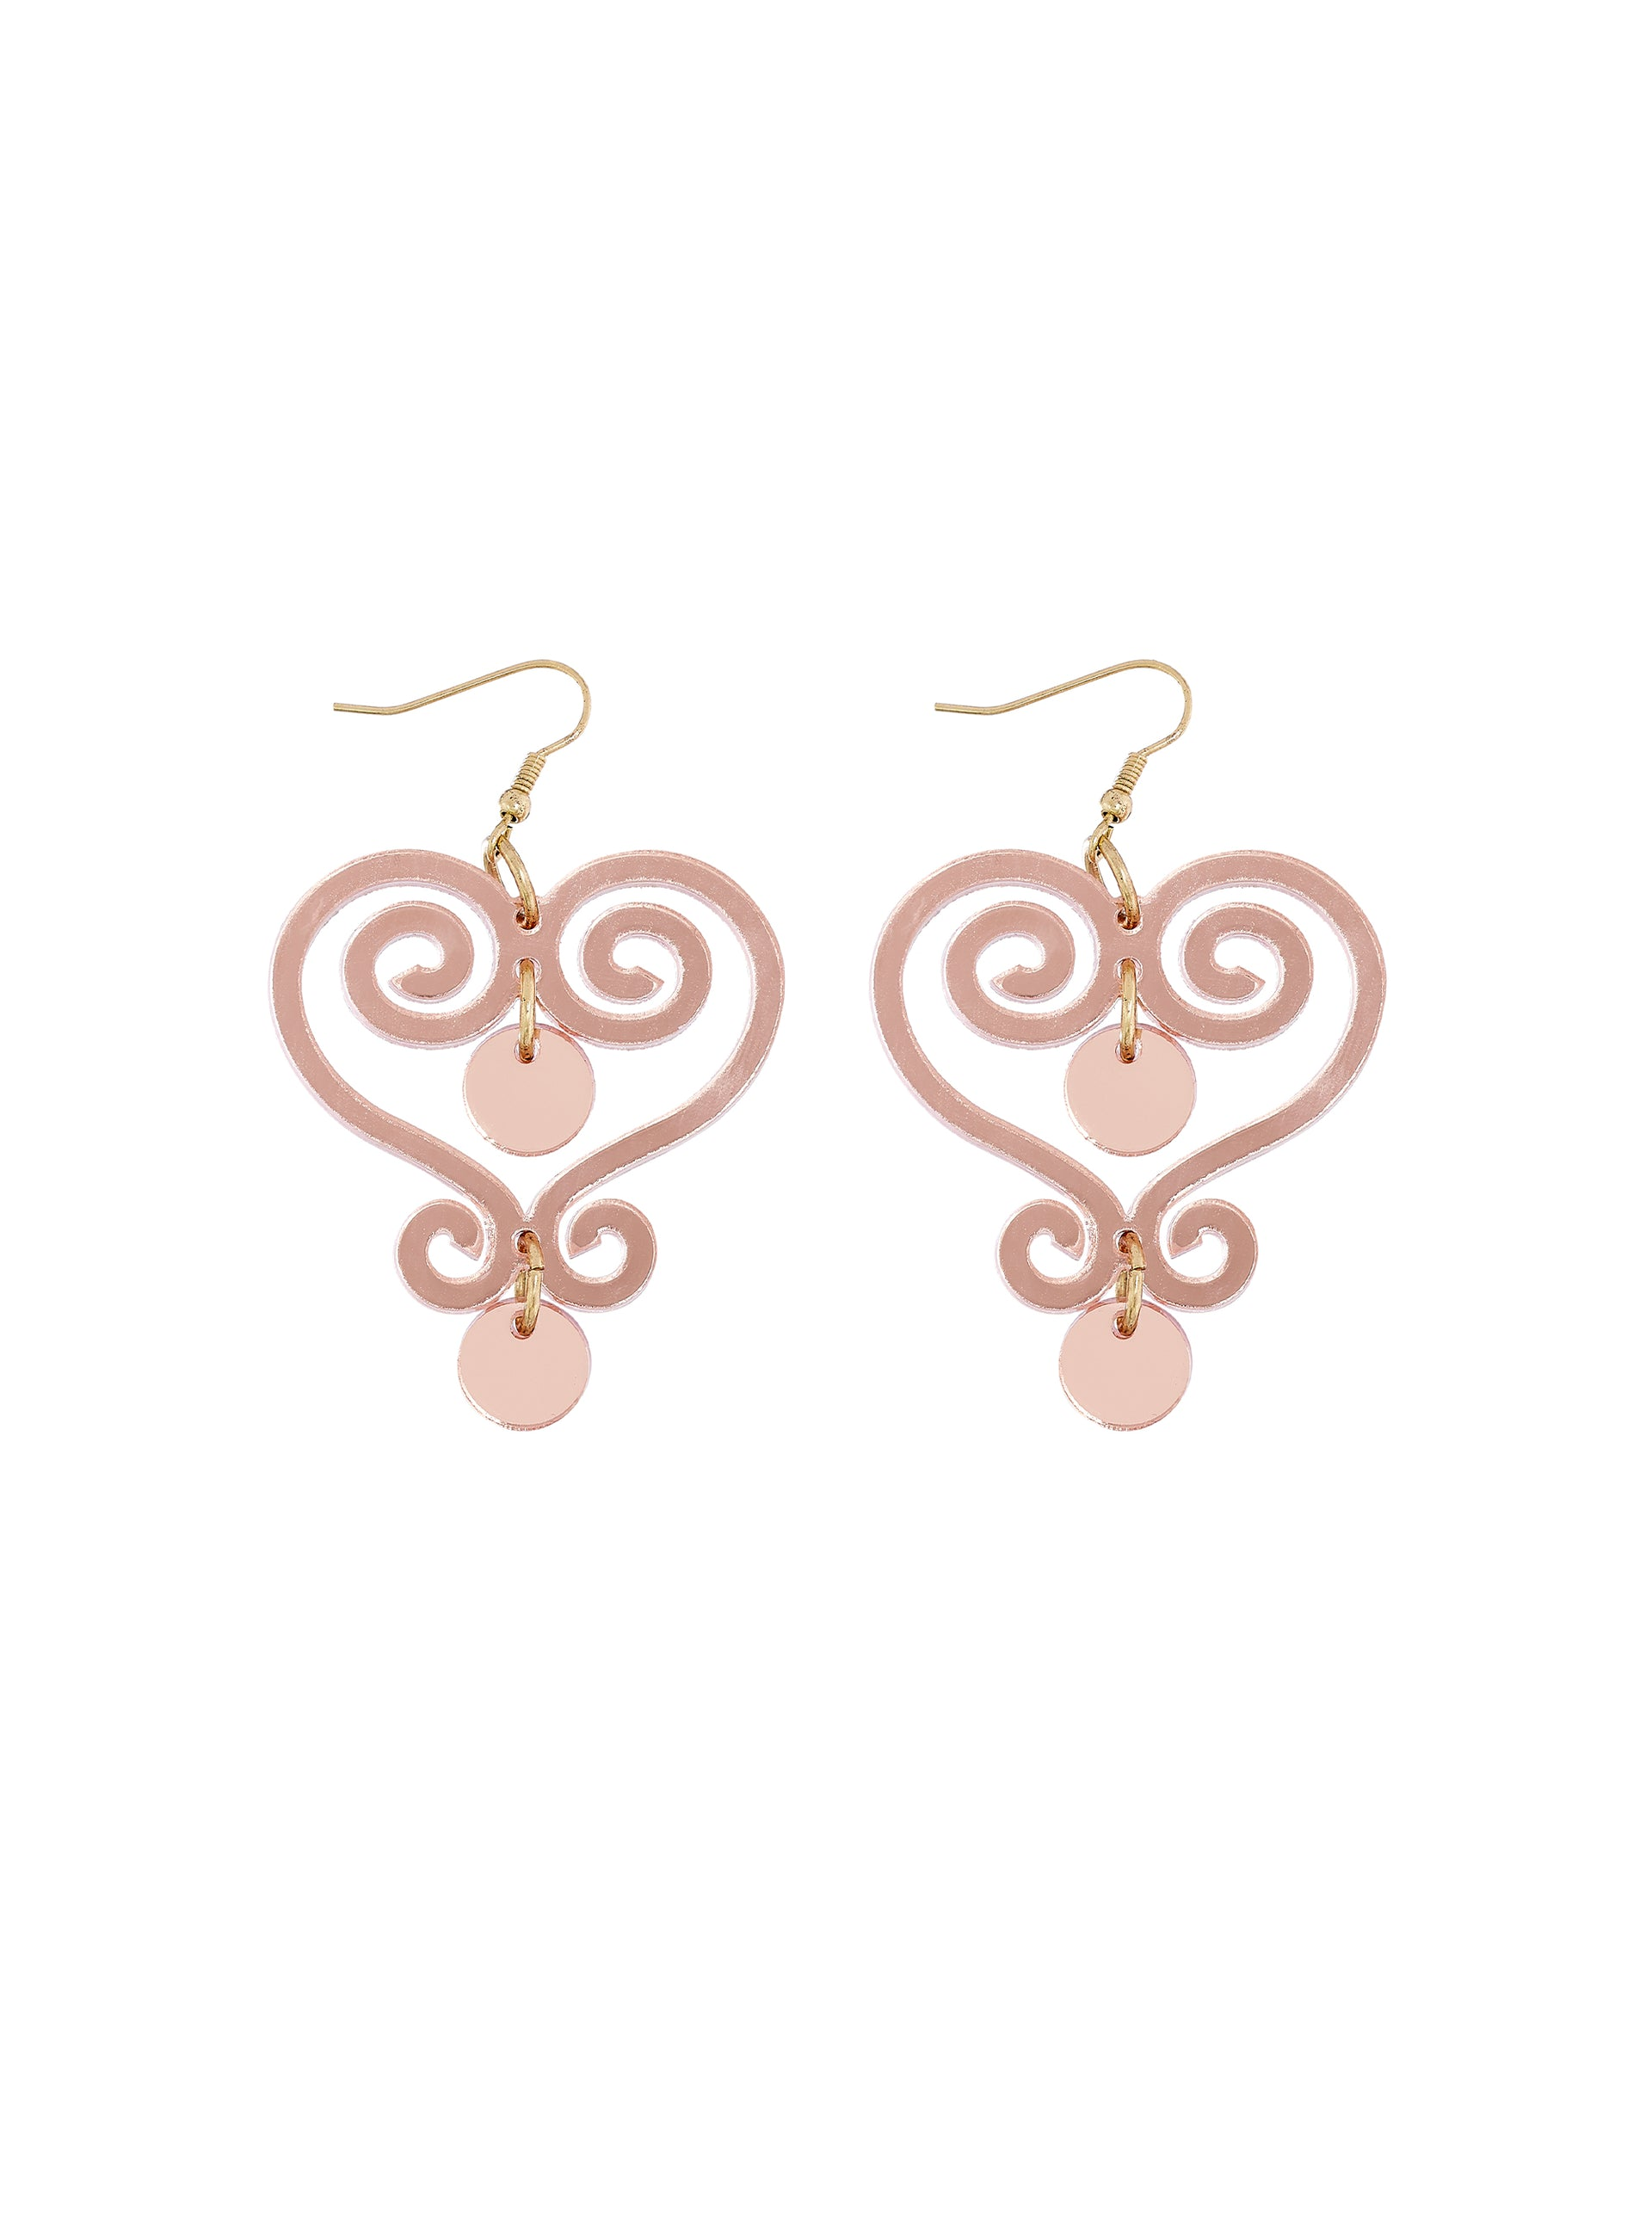 Ornate Gate Earrings - Rose Gold